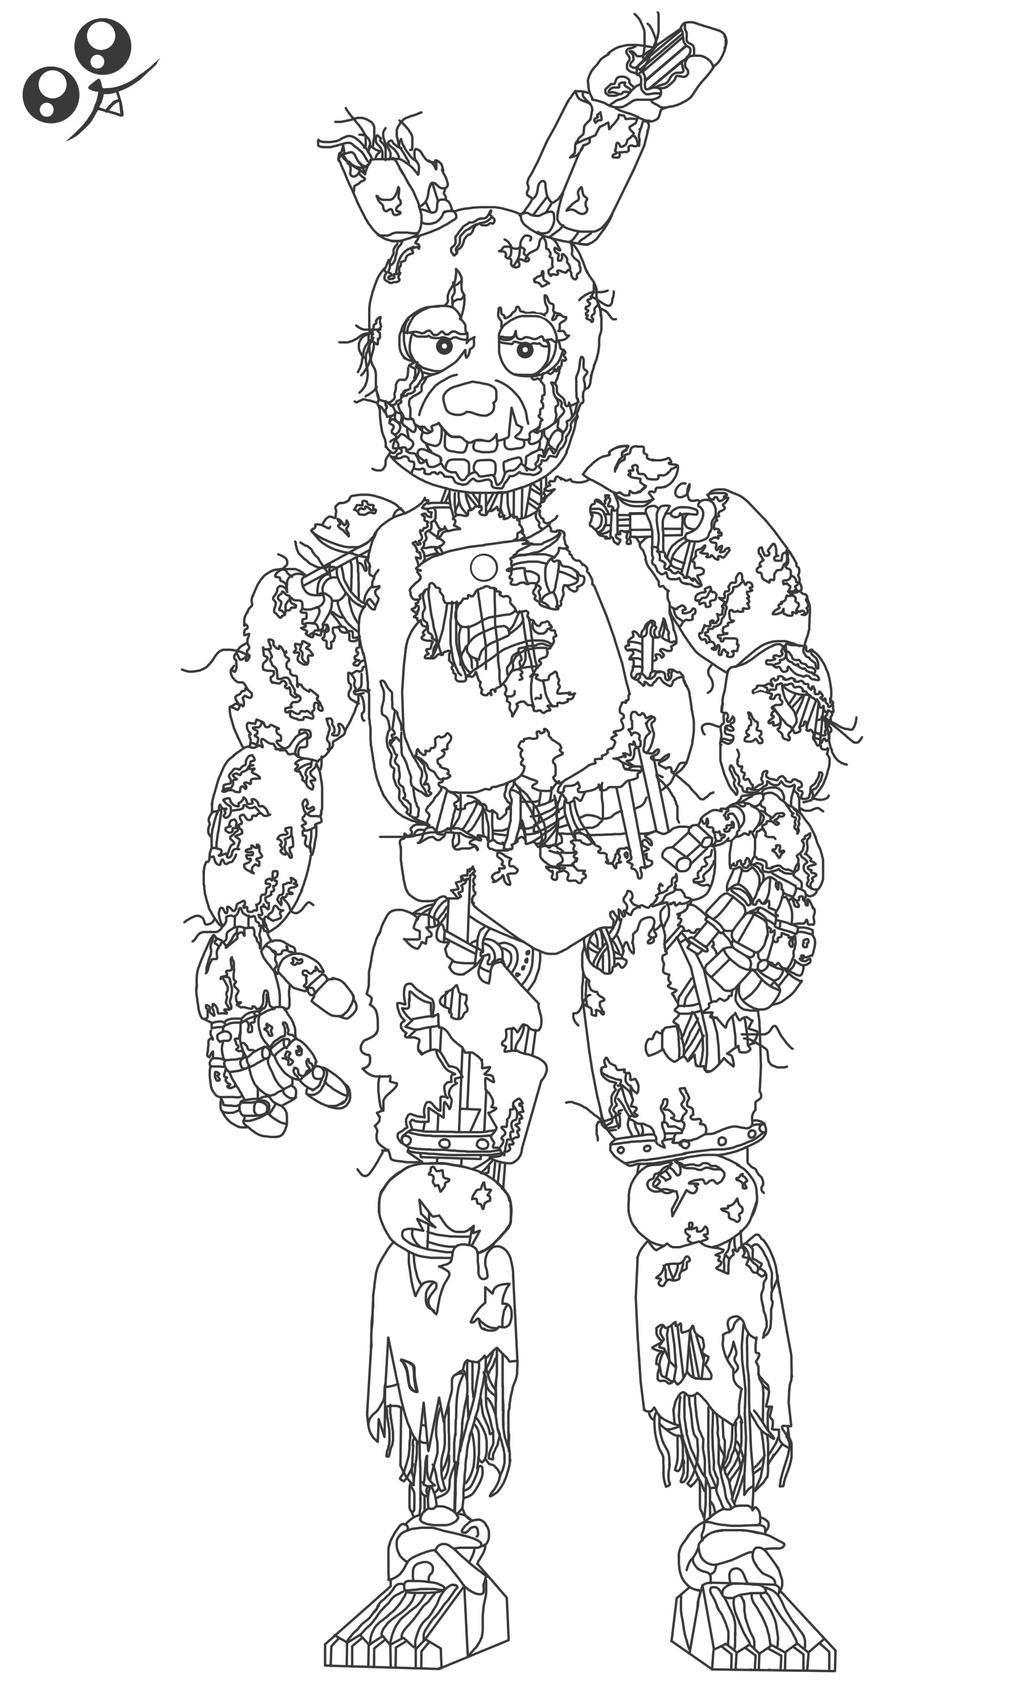 Spring trap fnaf free colouring pages for Fnaf coloring pages nightmare